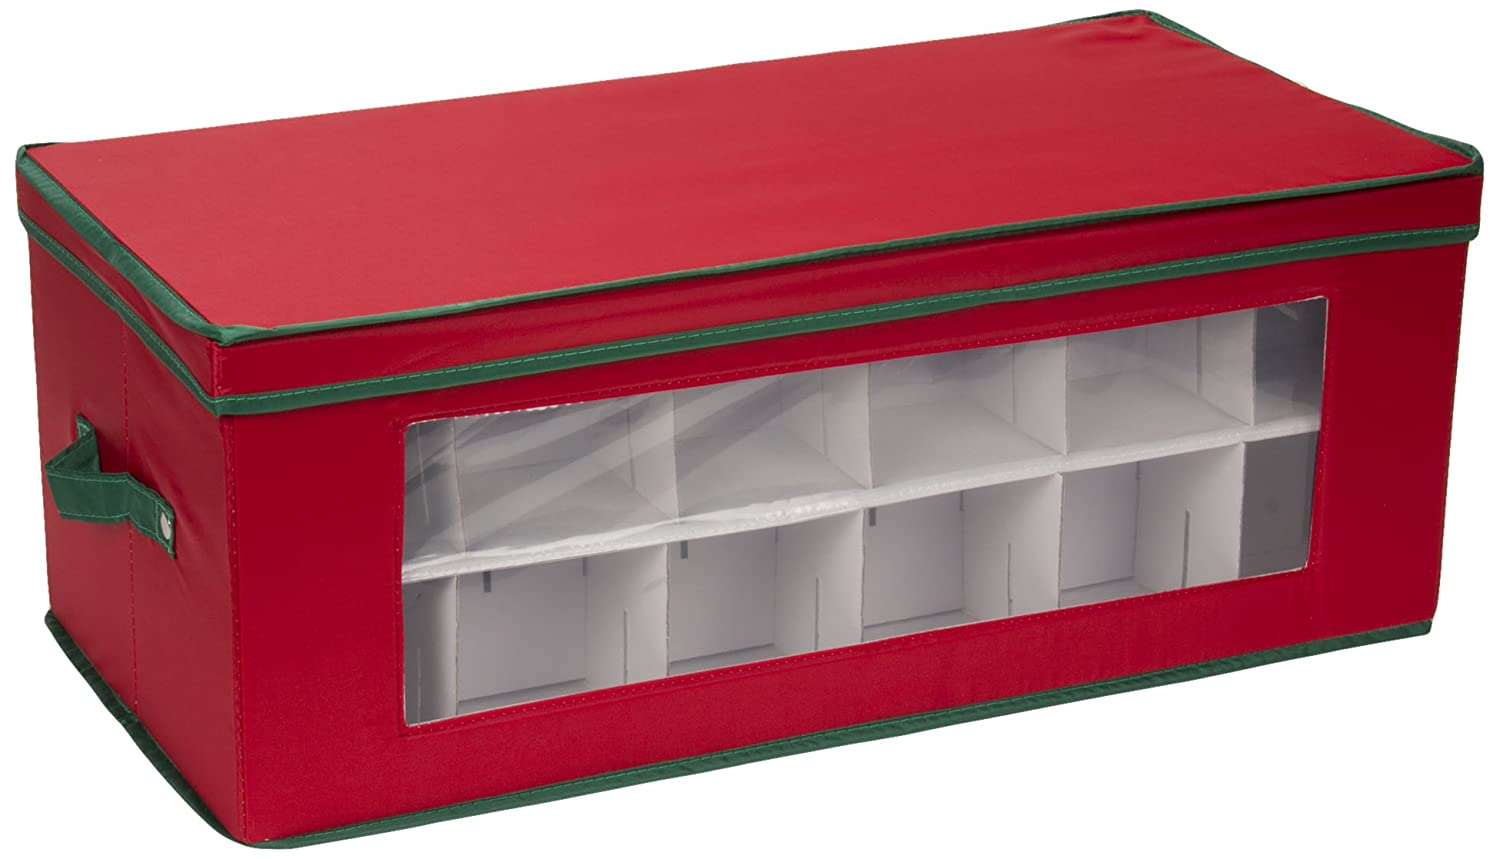 Amazon.com Household Essentials 551RED Large Christmas Tree Ornament Storage Box -Stores Up to 36 Xmas Ornaments - Red Bin with Green Trim Home u0026 Kitchen  sc 1 st  Amazon.com & Amazon.com: Household Essentials 551RED Large Christmas Tree ...